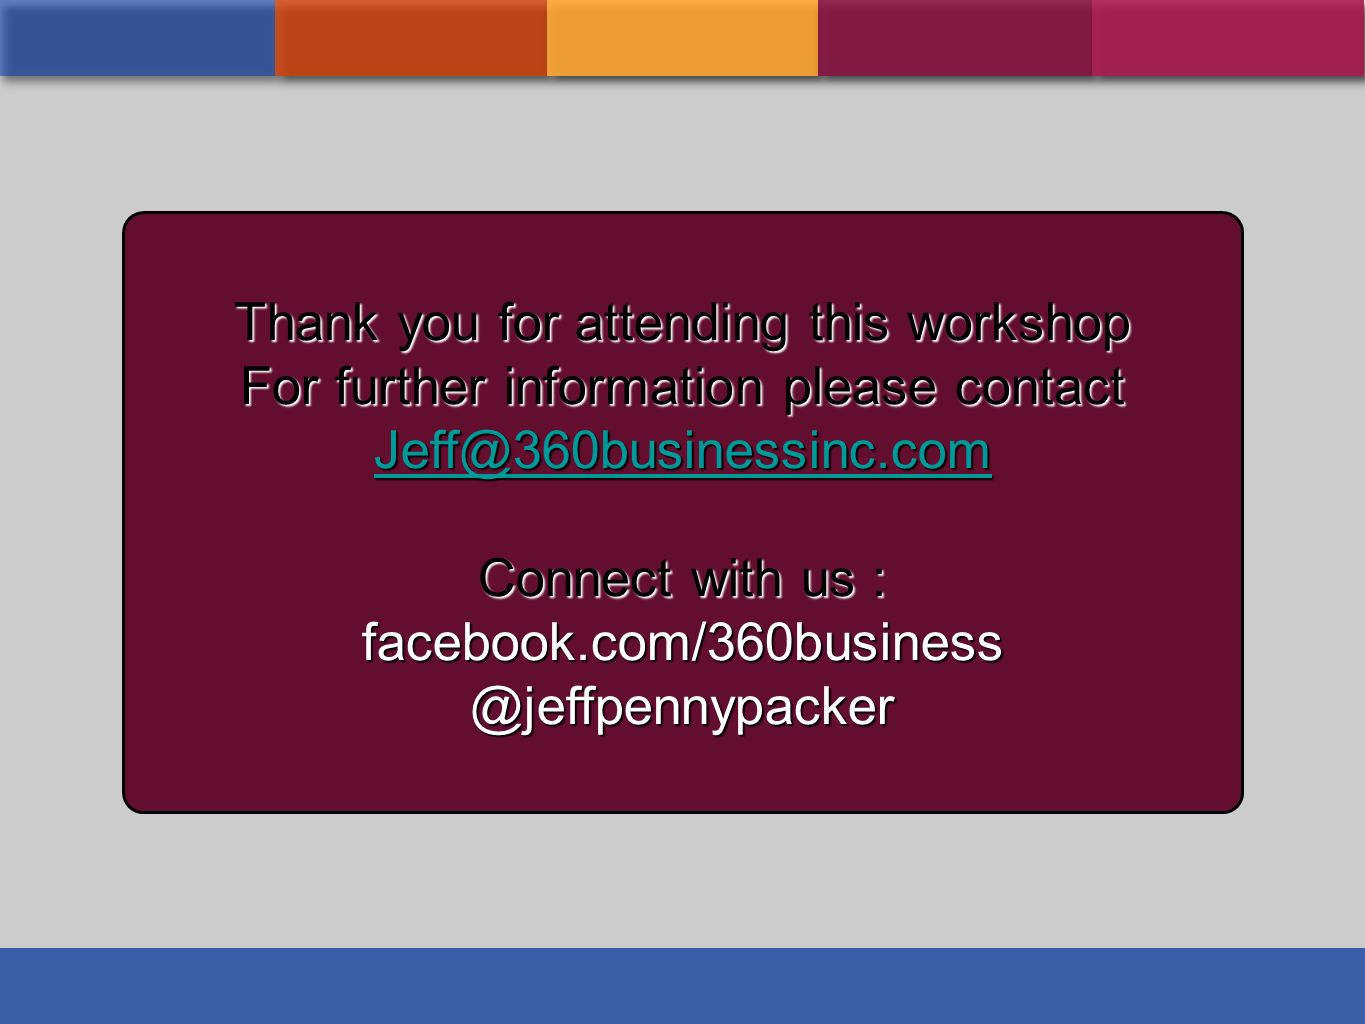 Thank you for attending this workshop For further information please contact Jeff@360businessinc.com Connect with us : facebook.com/360business@jeffpe